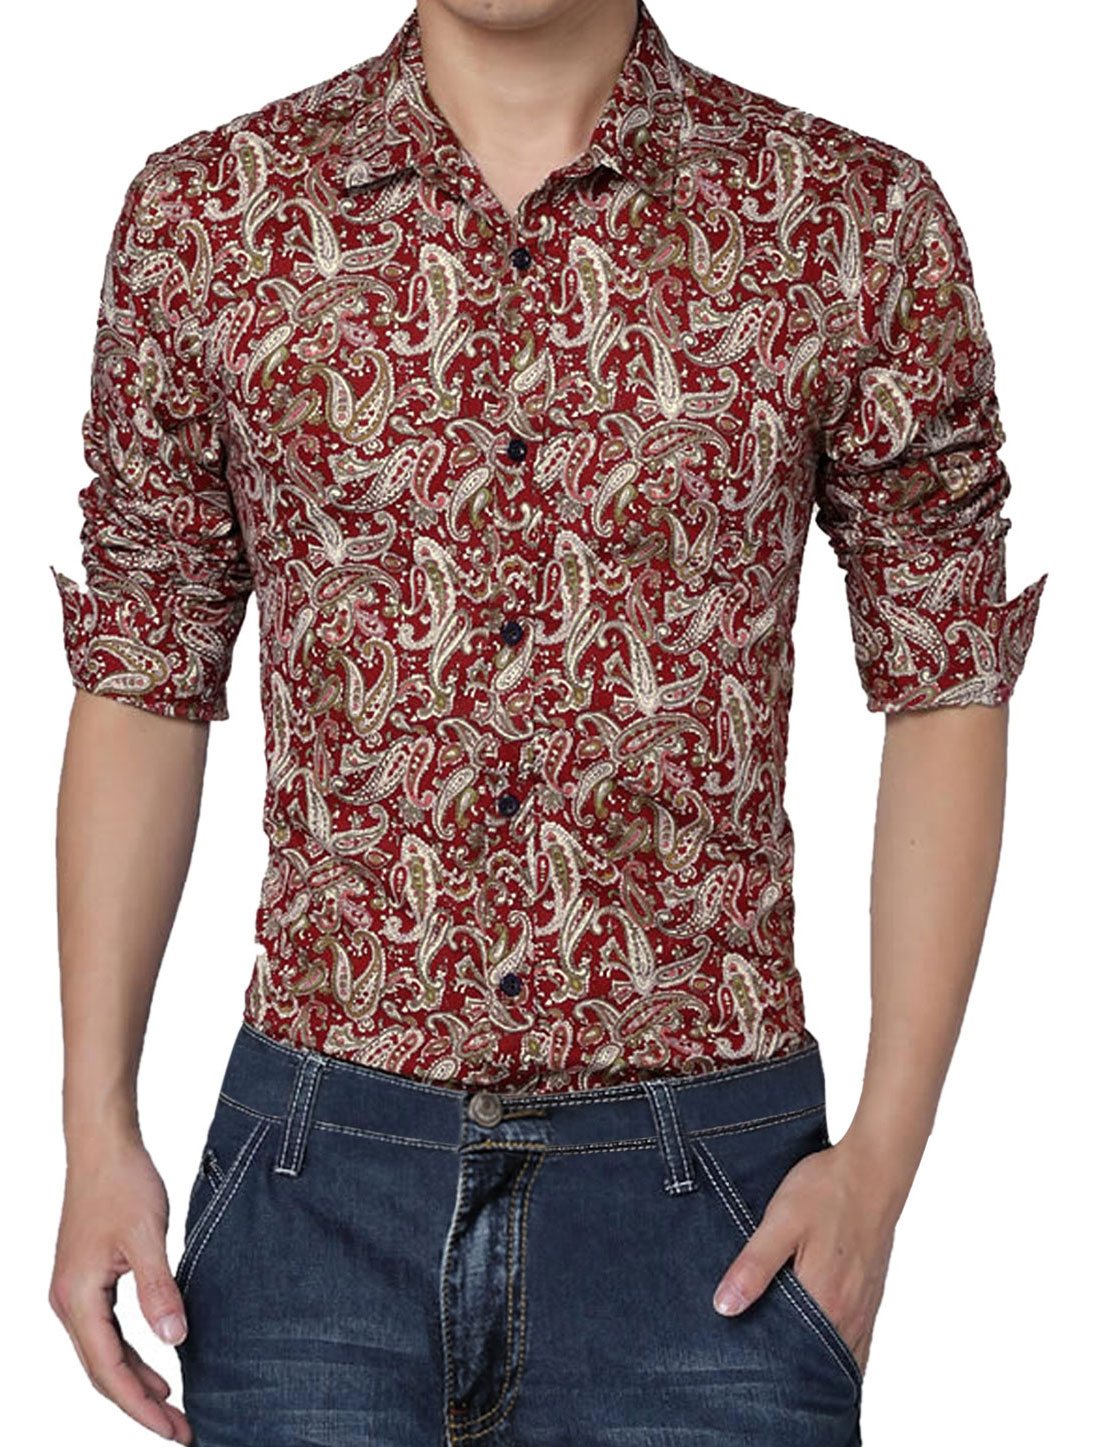 Unique Bargains Men's Printed Slim Fit Button Up Shirt Red (Size L / 42)